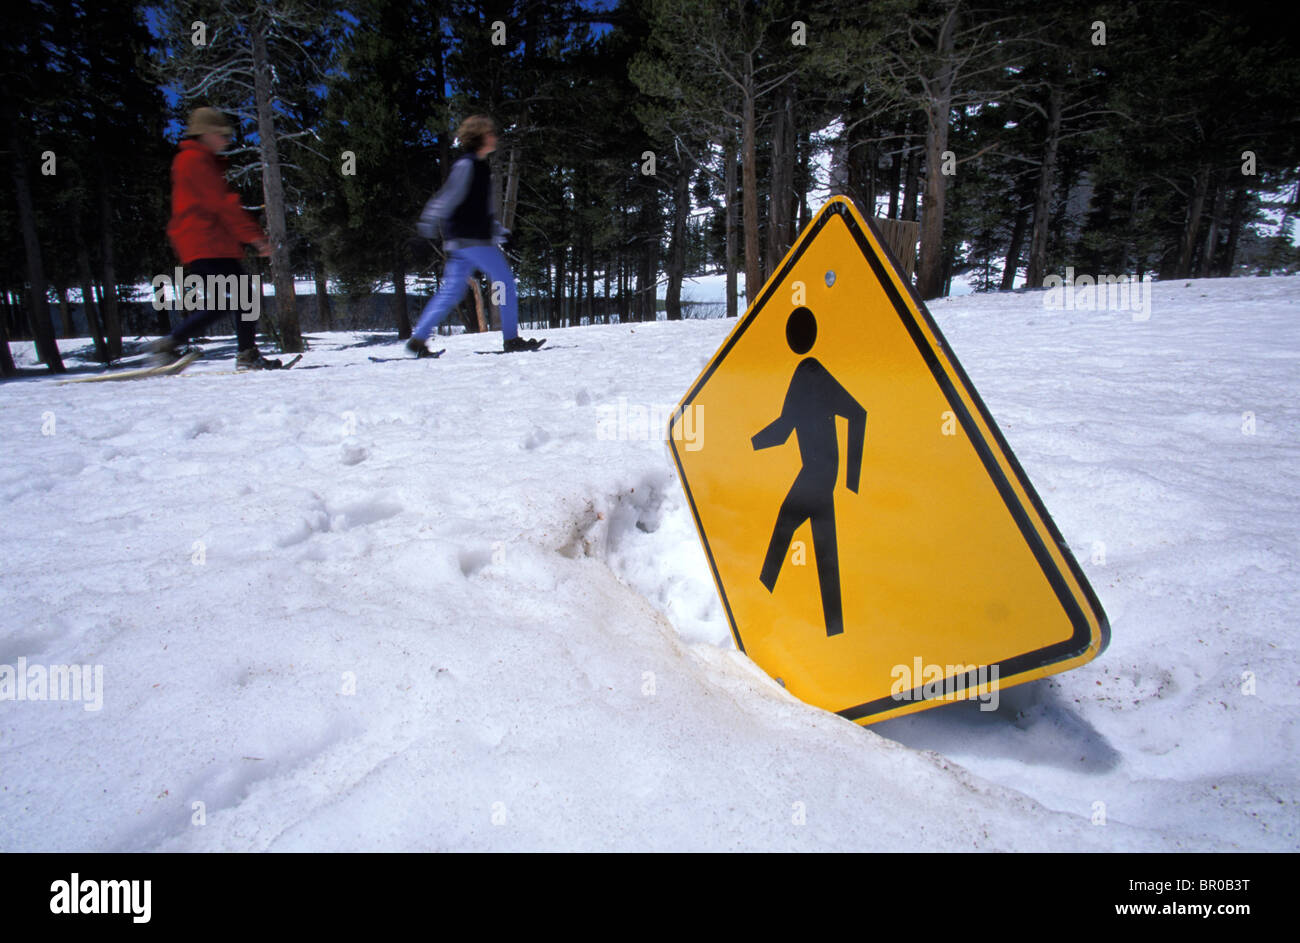 Snowshoeing on a sunny spring day. - Stock Image